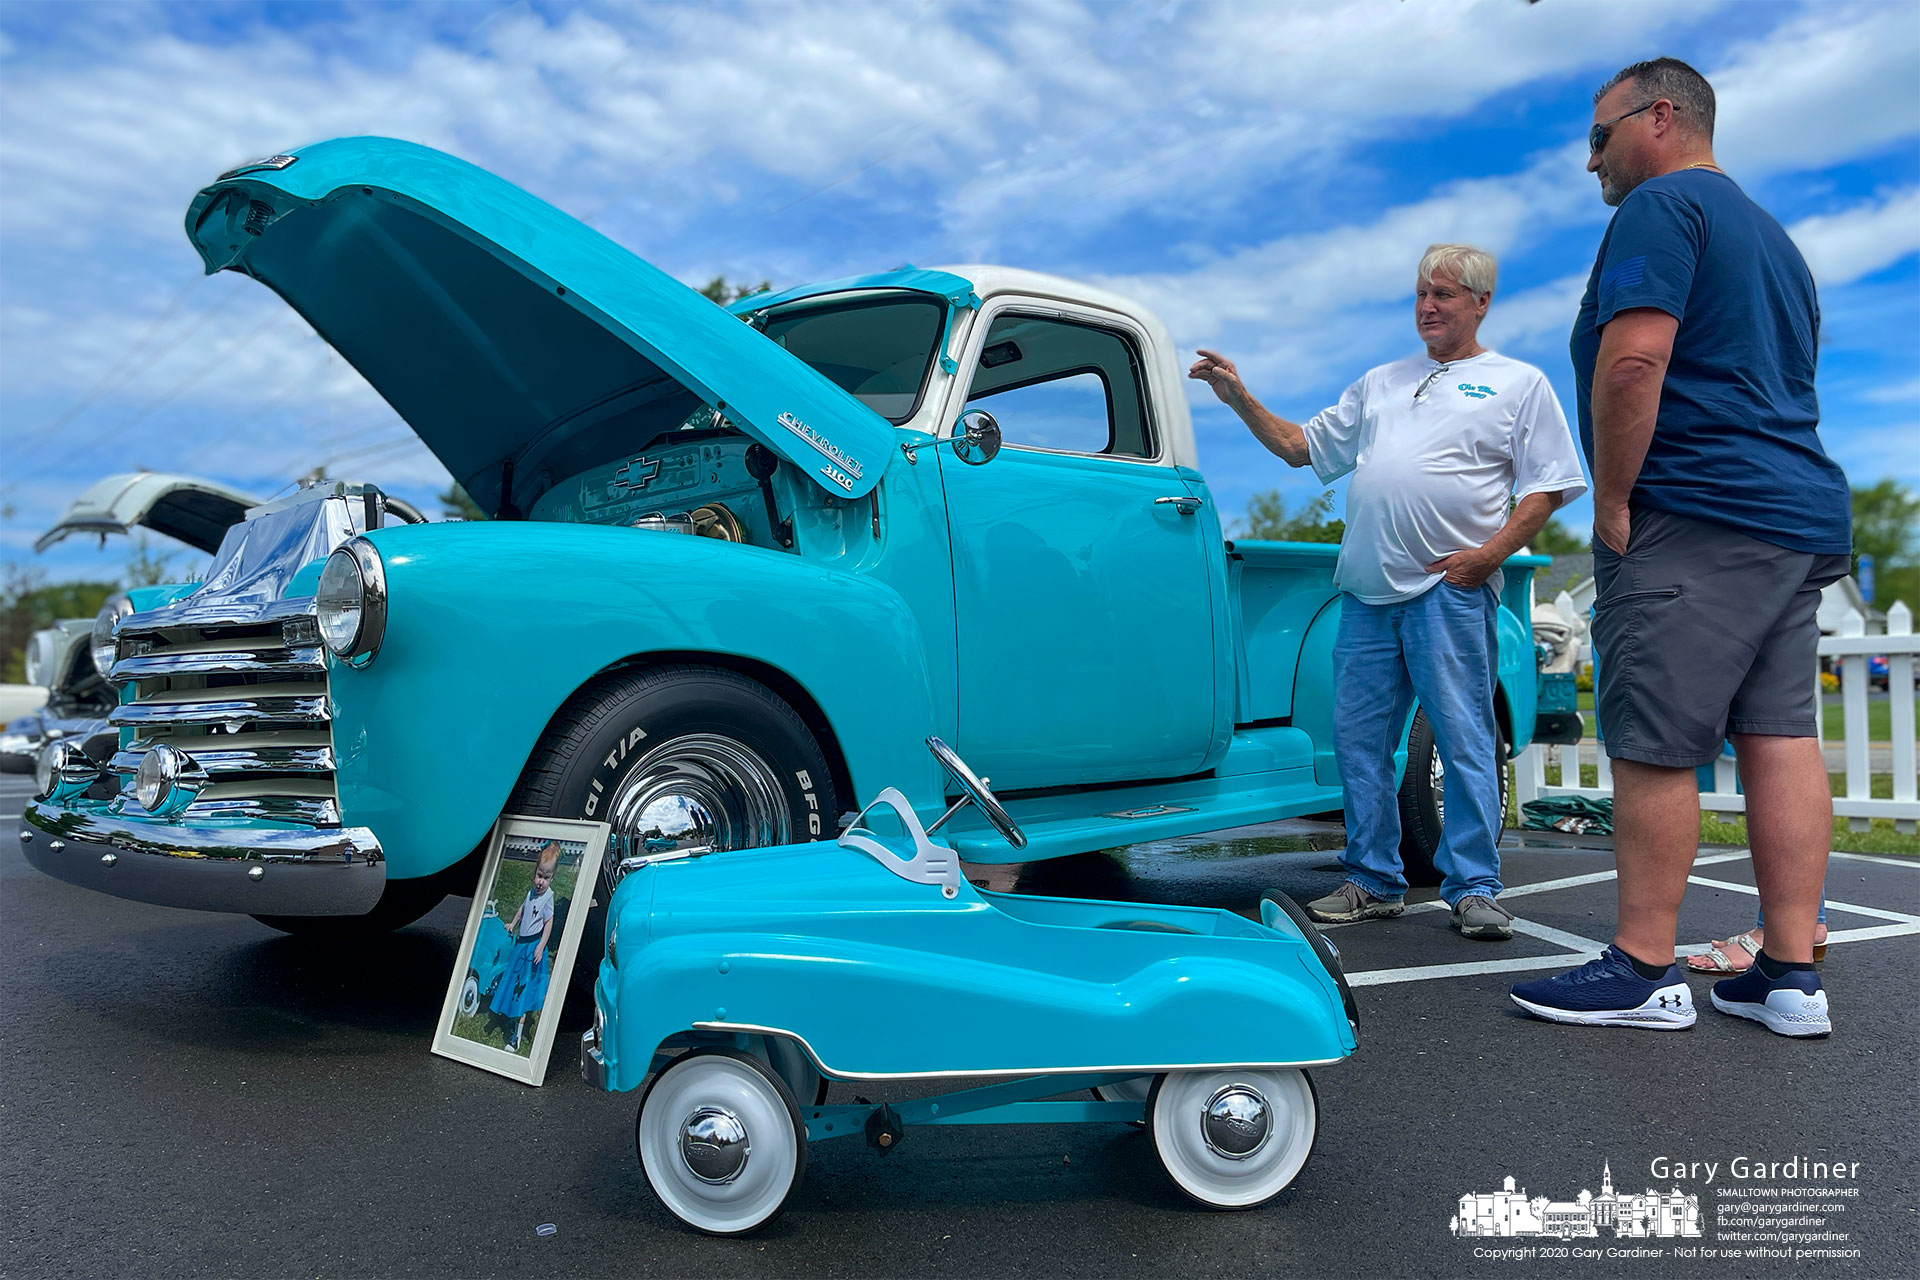 A miniature child's toy version of a 1953 Chevrolet 3100 step-side pickup truck sits beside a restored original truck at Grace Chapel Community Church. My Final Photo for June 19, 2021.